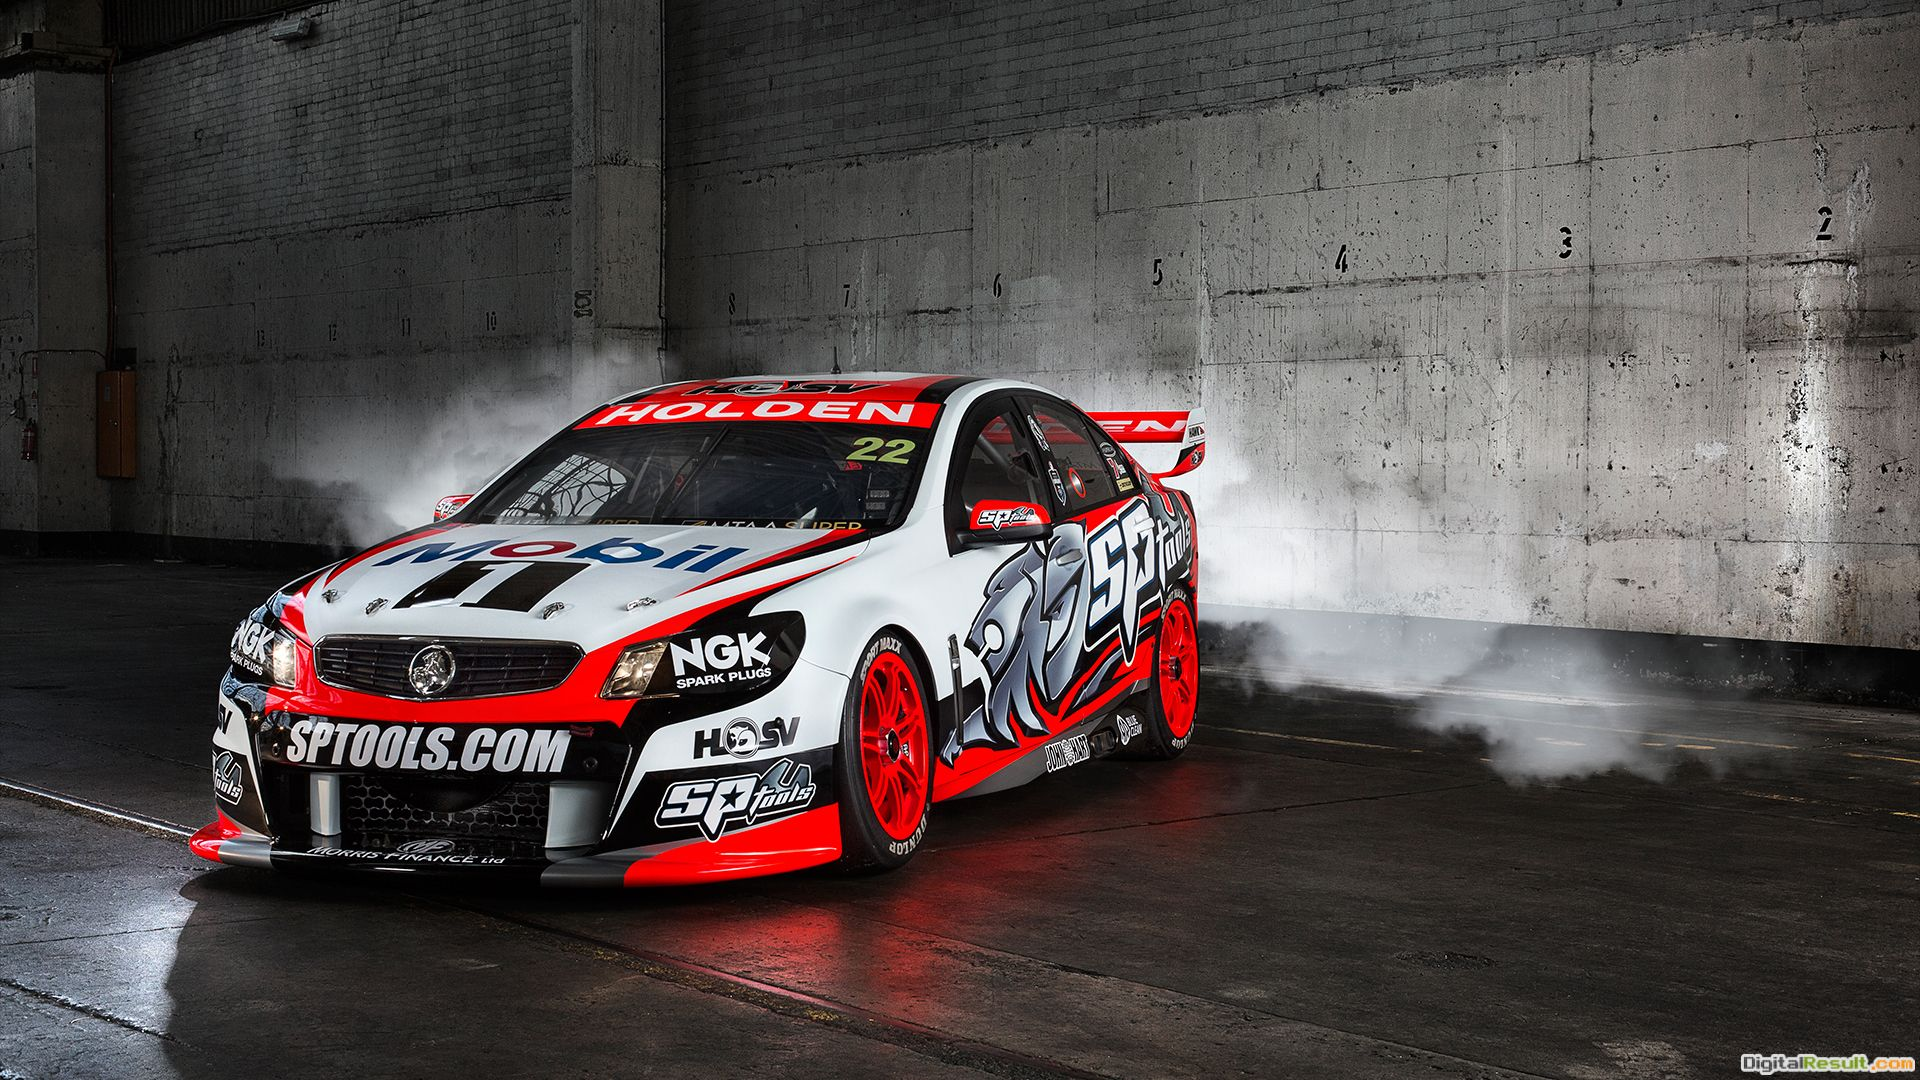 v8 supercars live | Hd Wallpapers 258